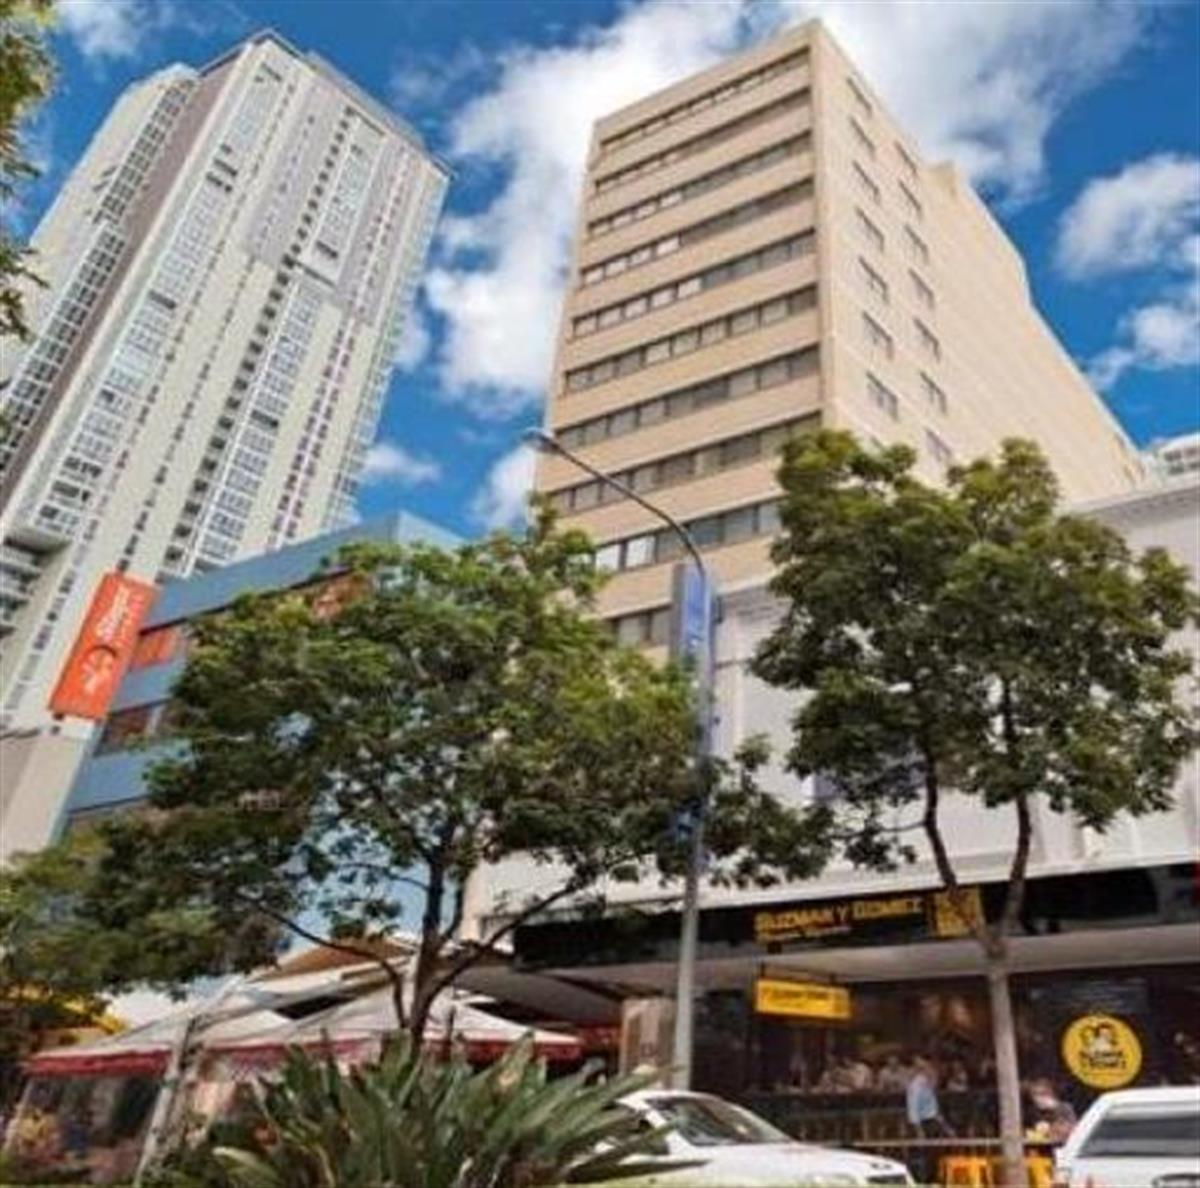 23-24138-albert-street-brisbane-4000-qld